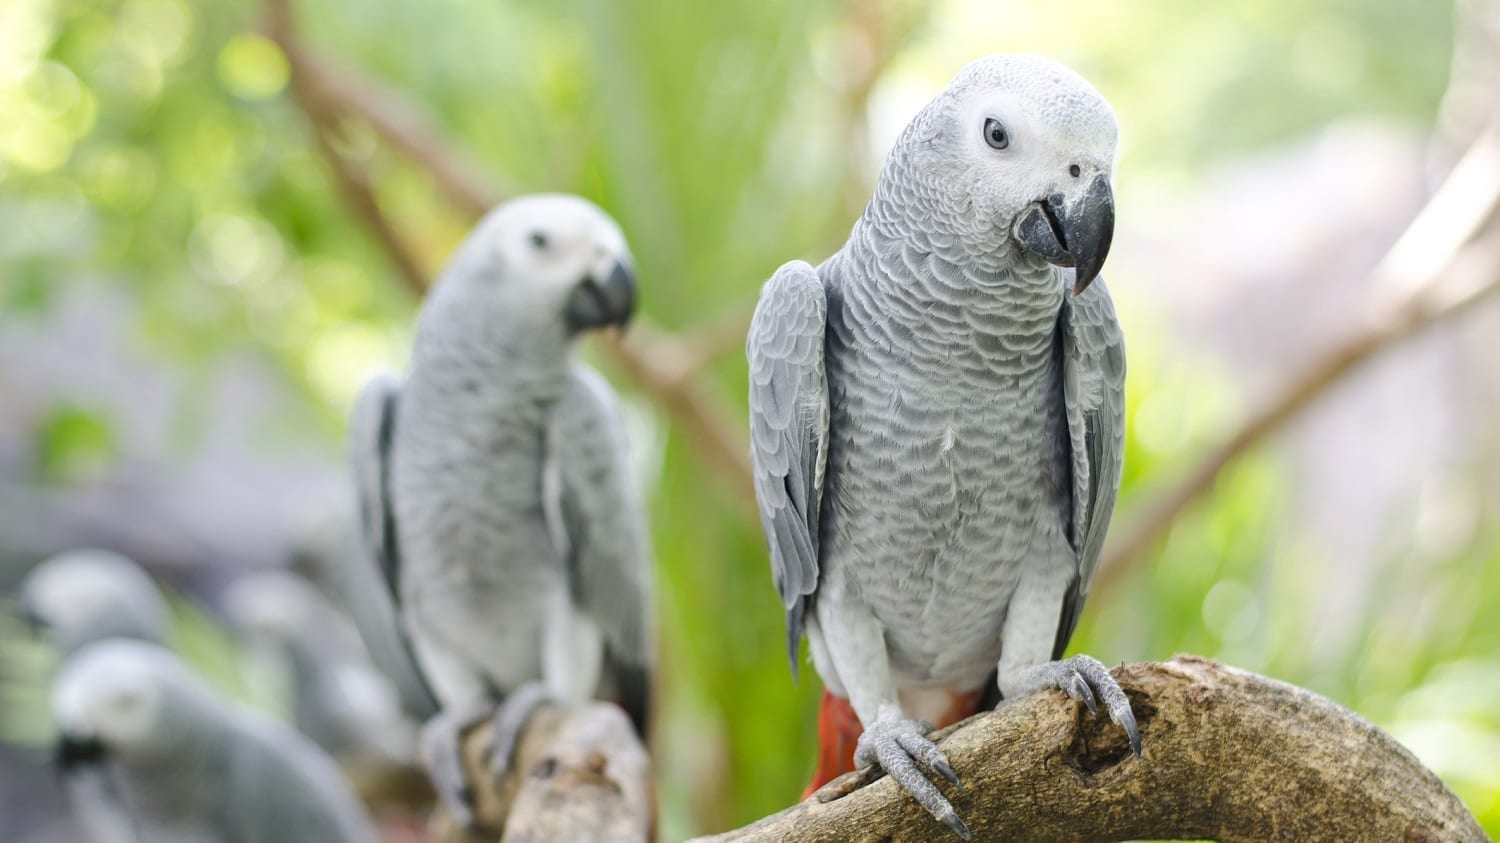 African Grey Parrots on a branch: Photo 34450795 © Piyathep | Dreamstime.com